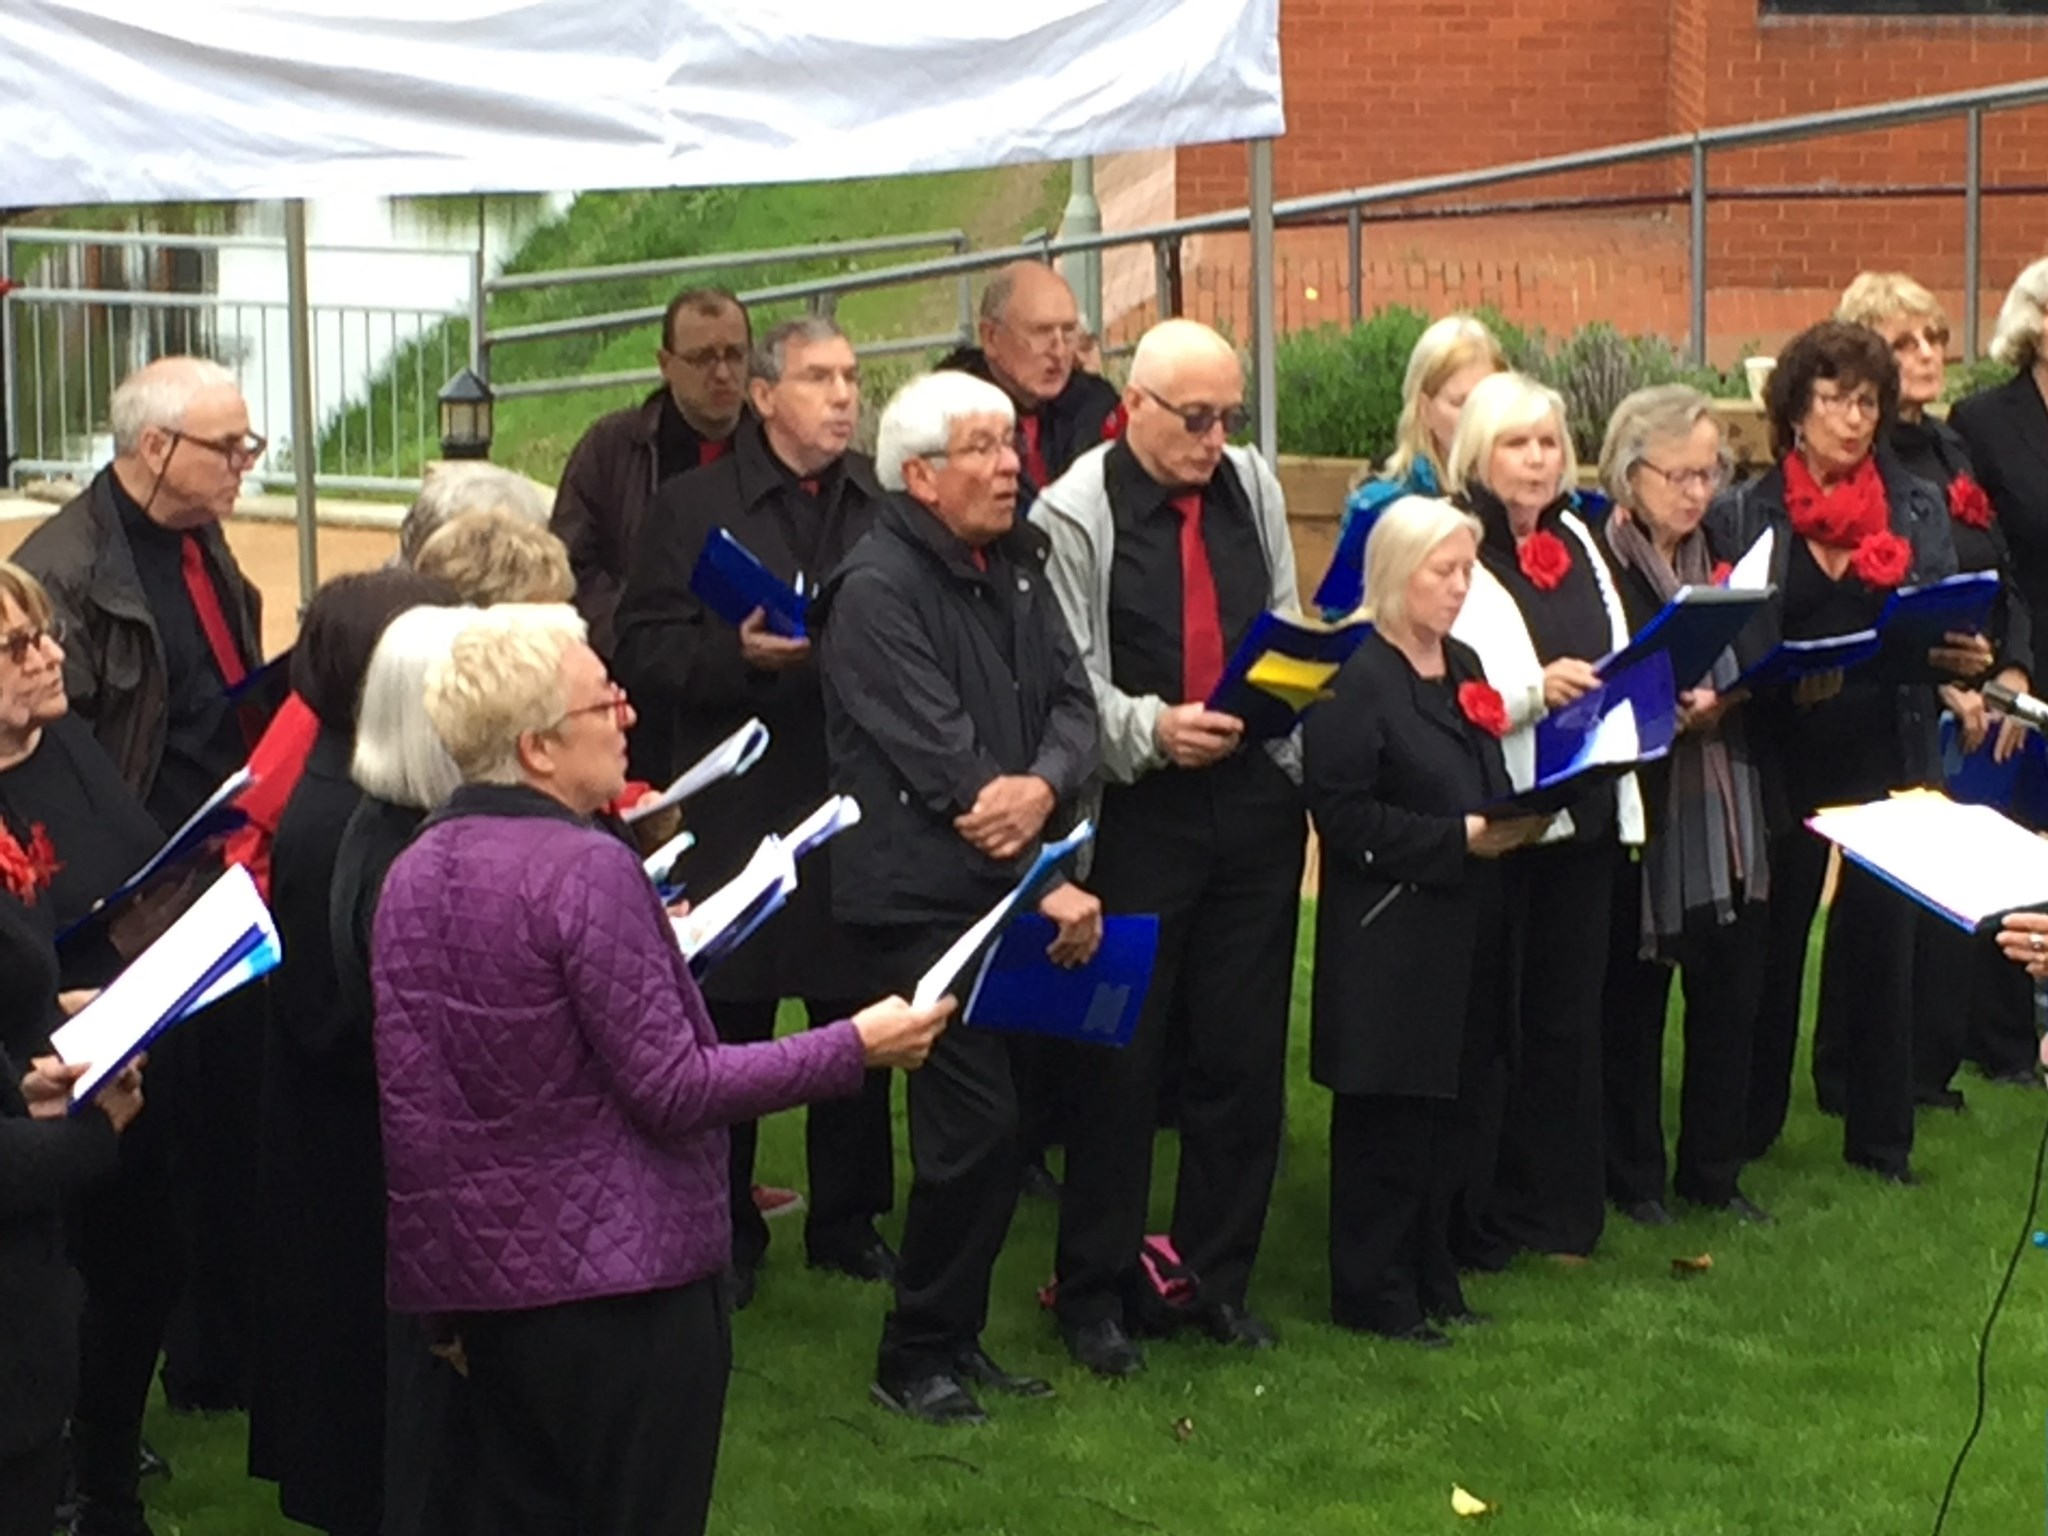 Dad singing in the Maidenhead Community Choir, April 2018